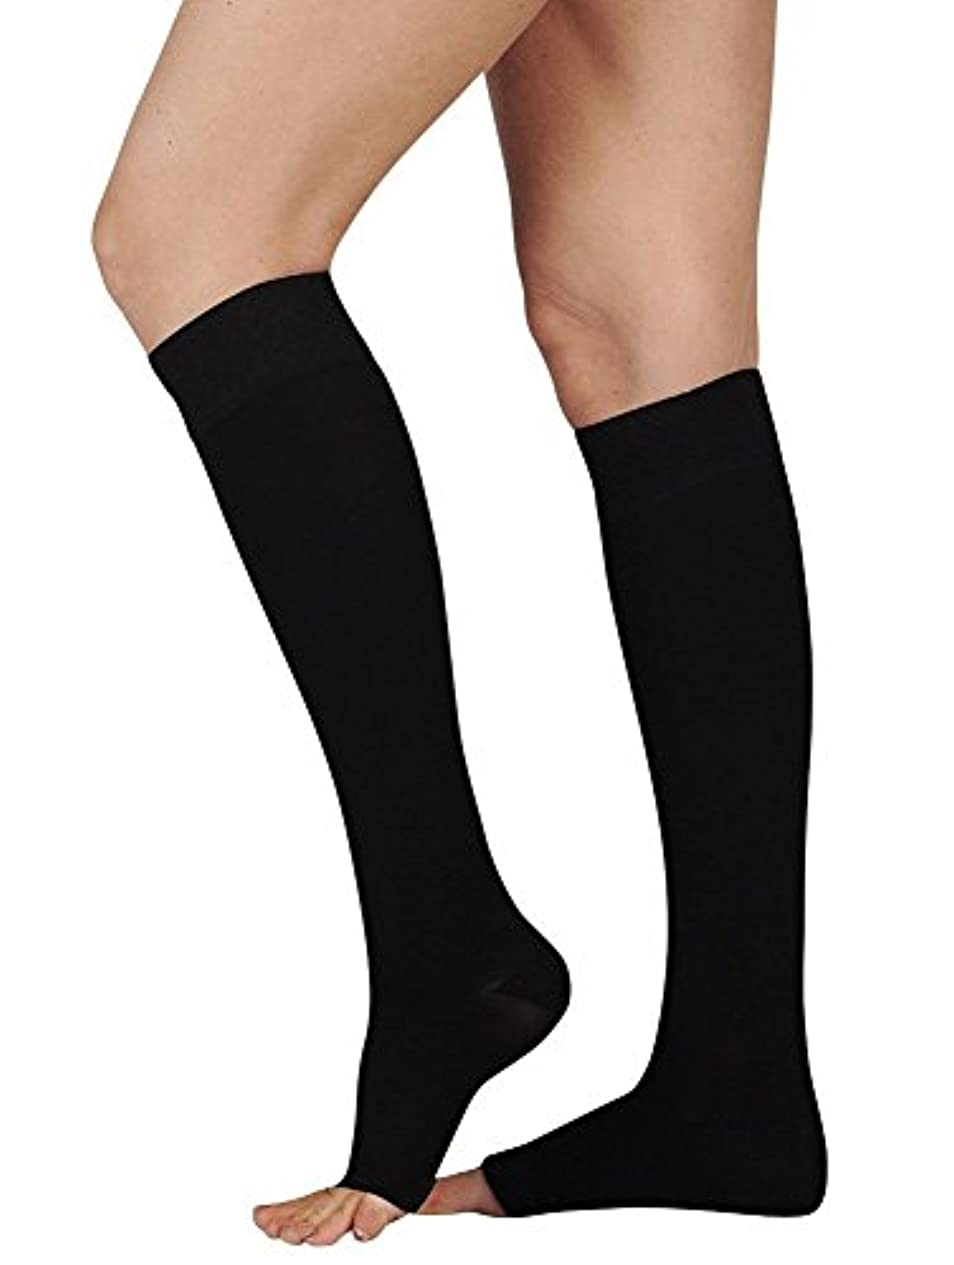 バックアップリズム異議Juzo Soft Knee High With Silicone Dot Band 20-30mmHg Closed Toe, III, Black by Juzo